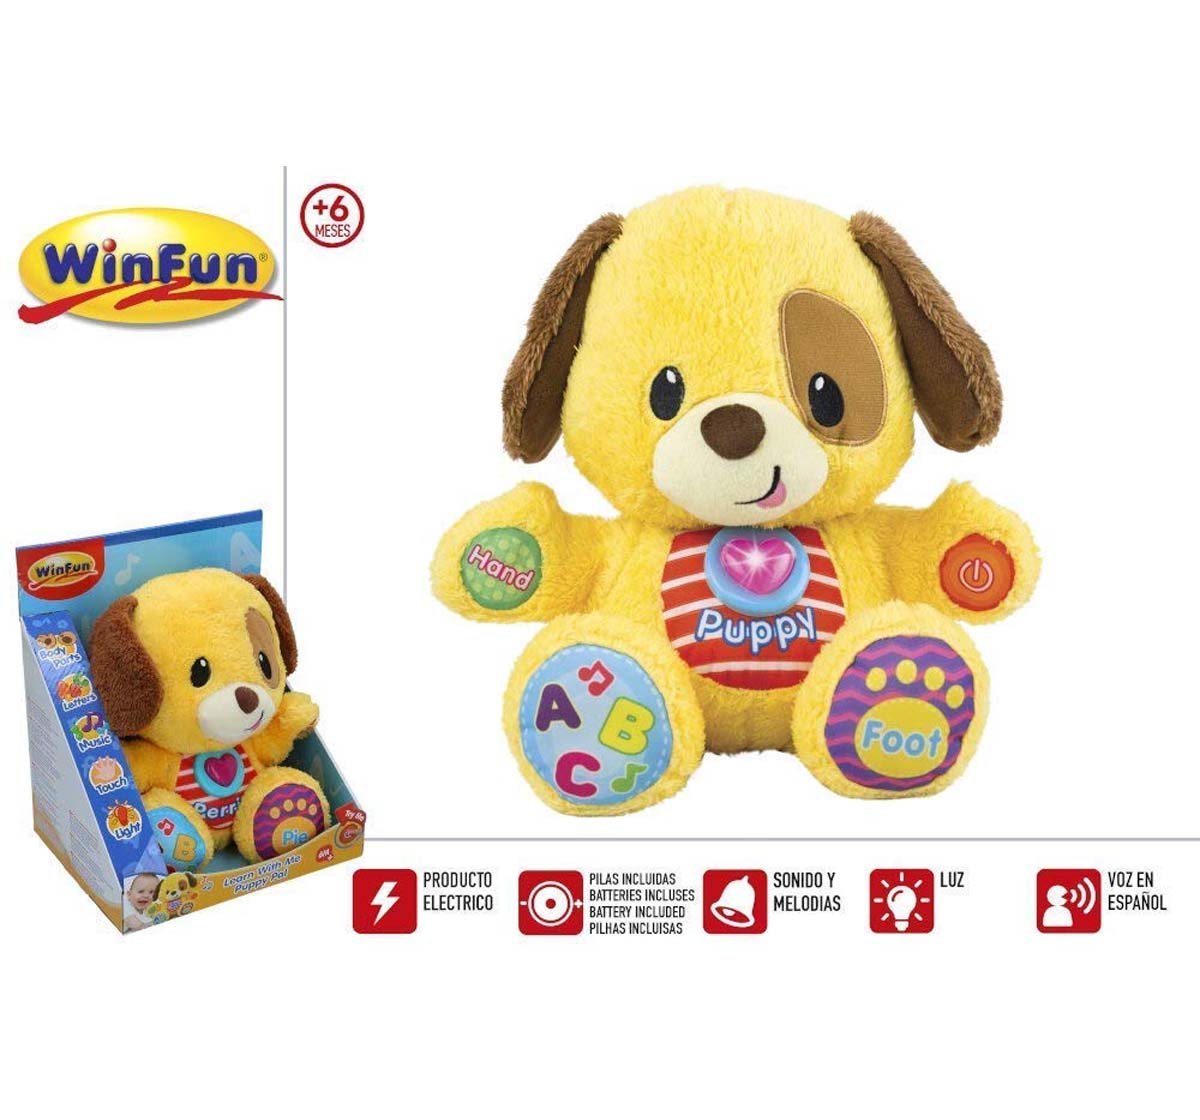 WinFun | Winfun Learn with me Brown Puppy Pal Learning Toys for Kids age 3Y+